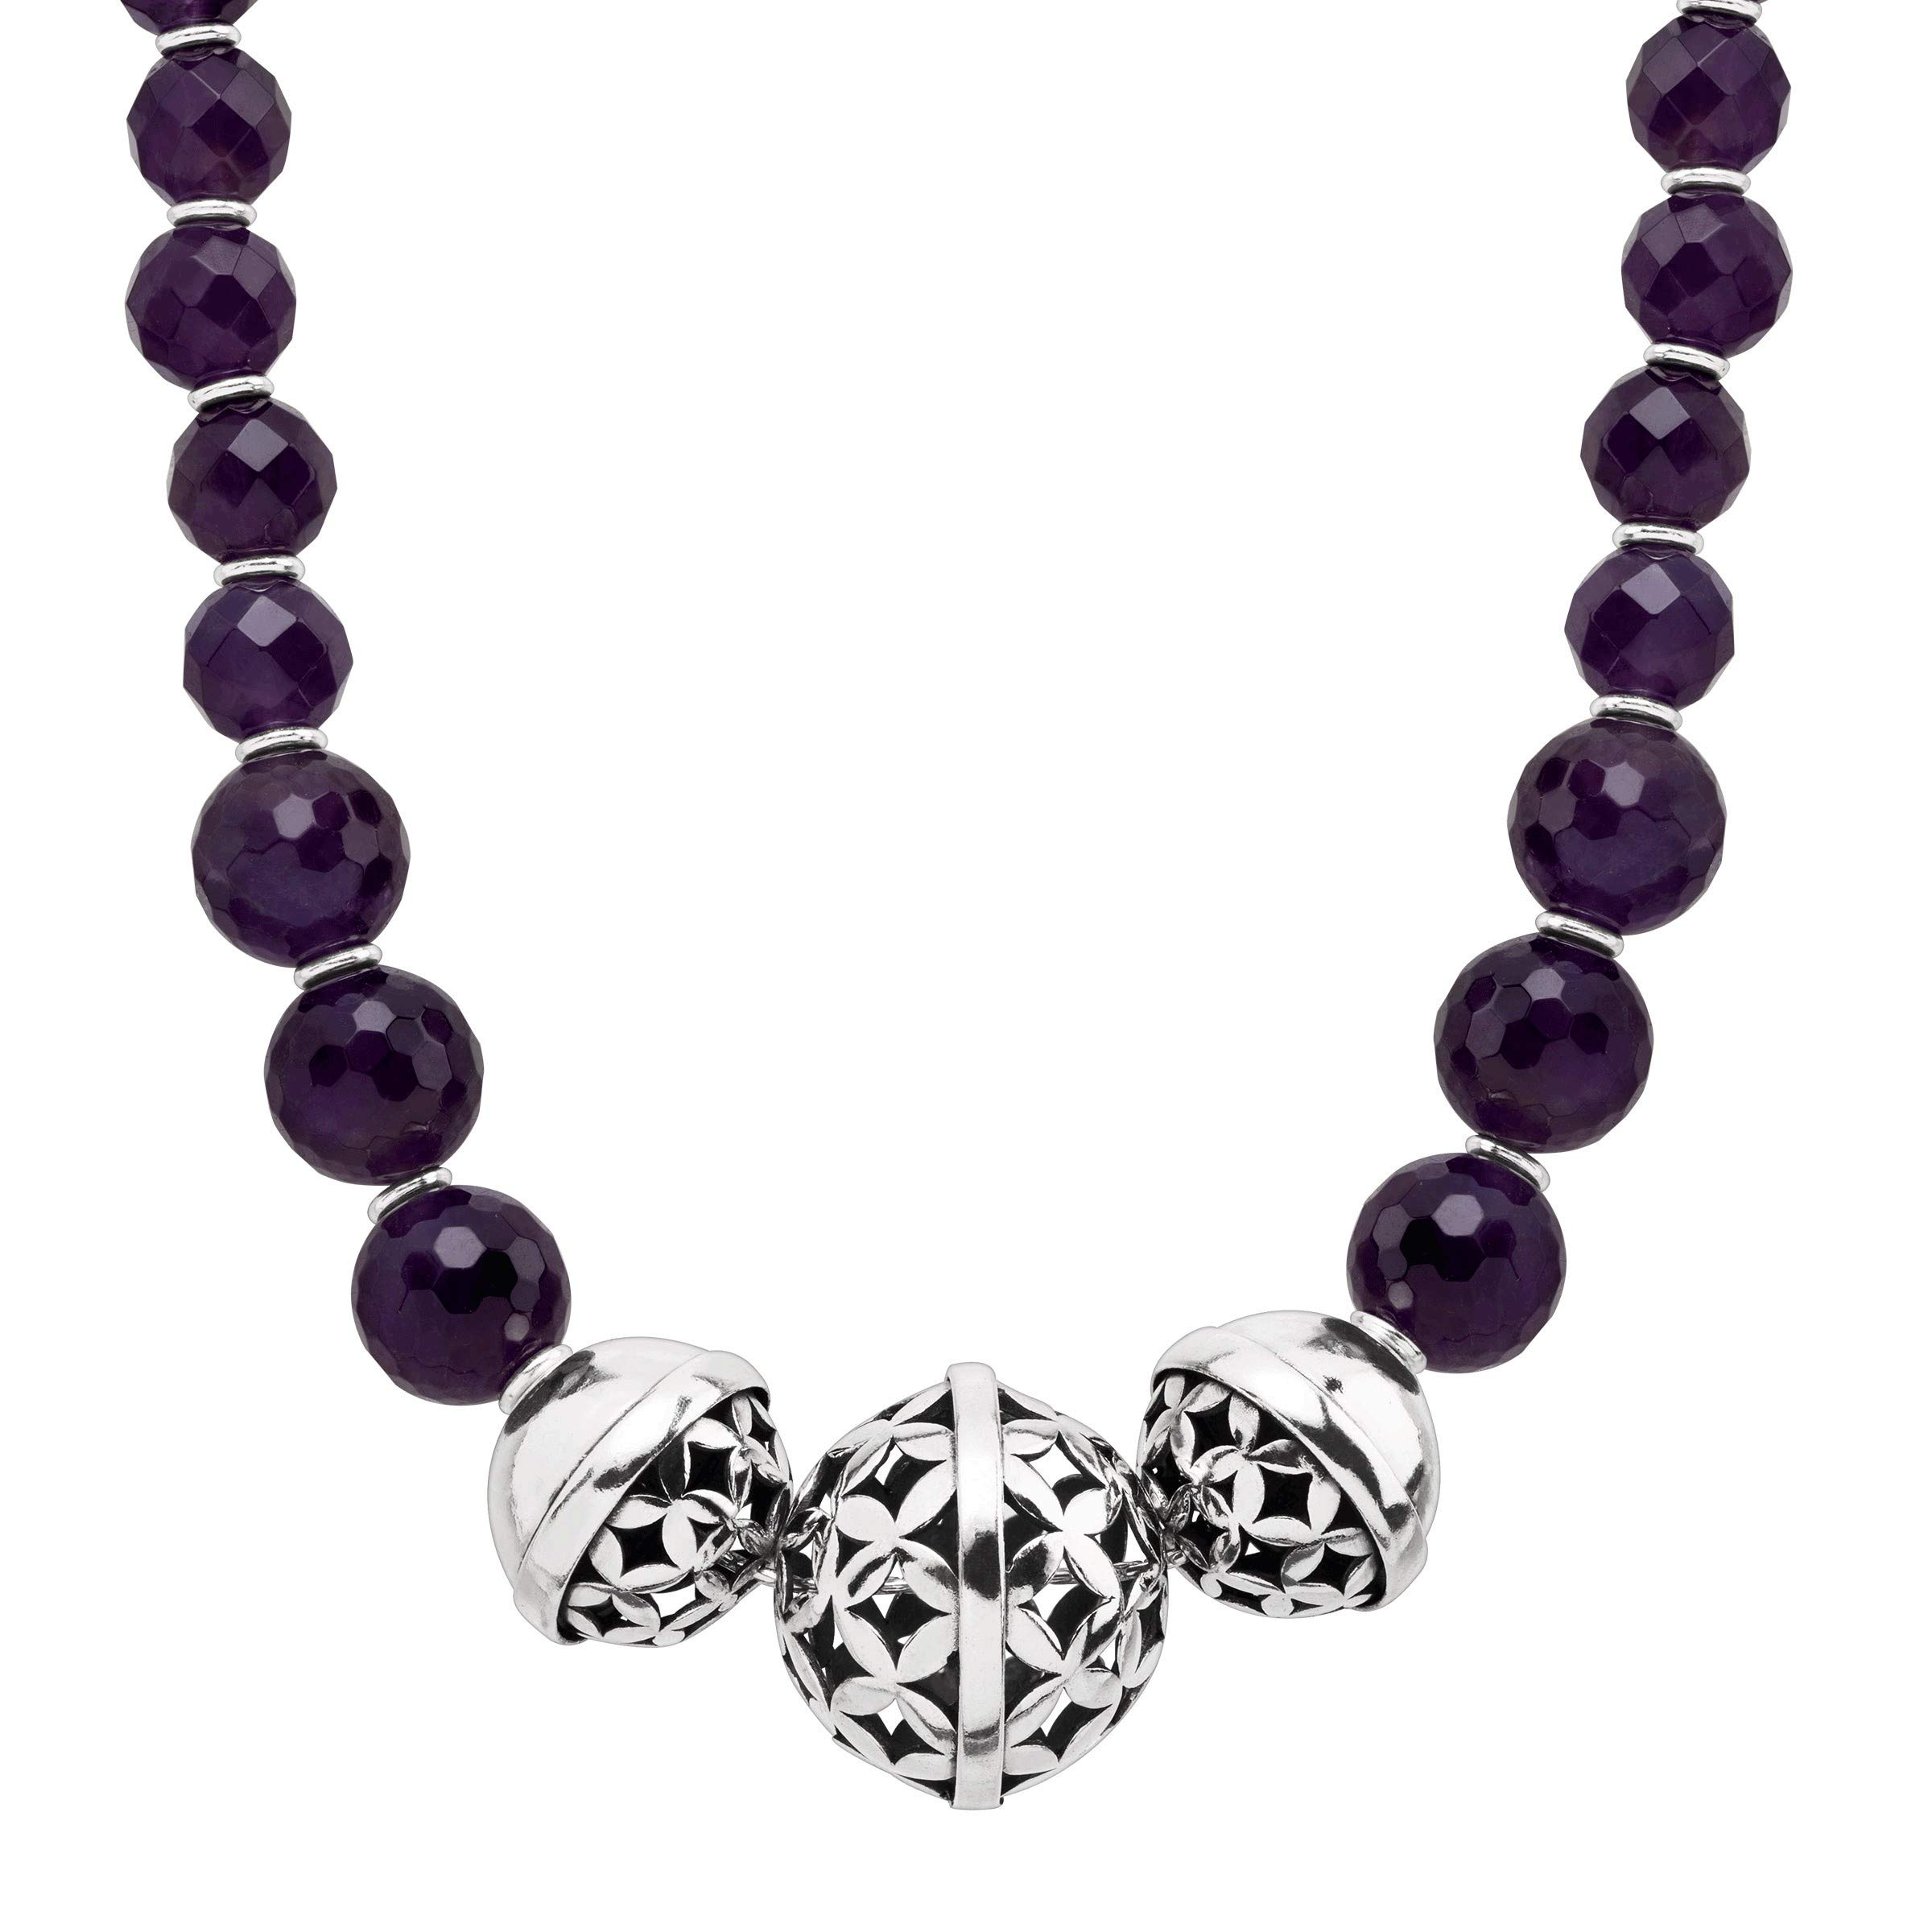 Silpada 'Midnight Maven' Natural Amethyst Statement Necklace in Sterling Silver